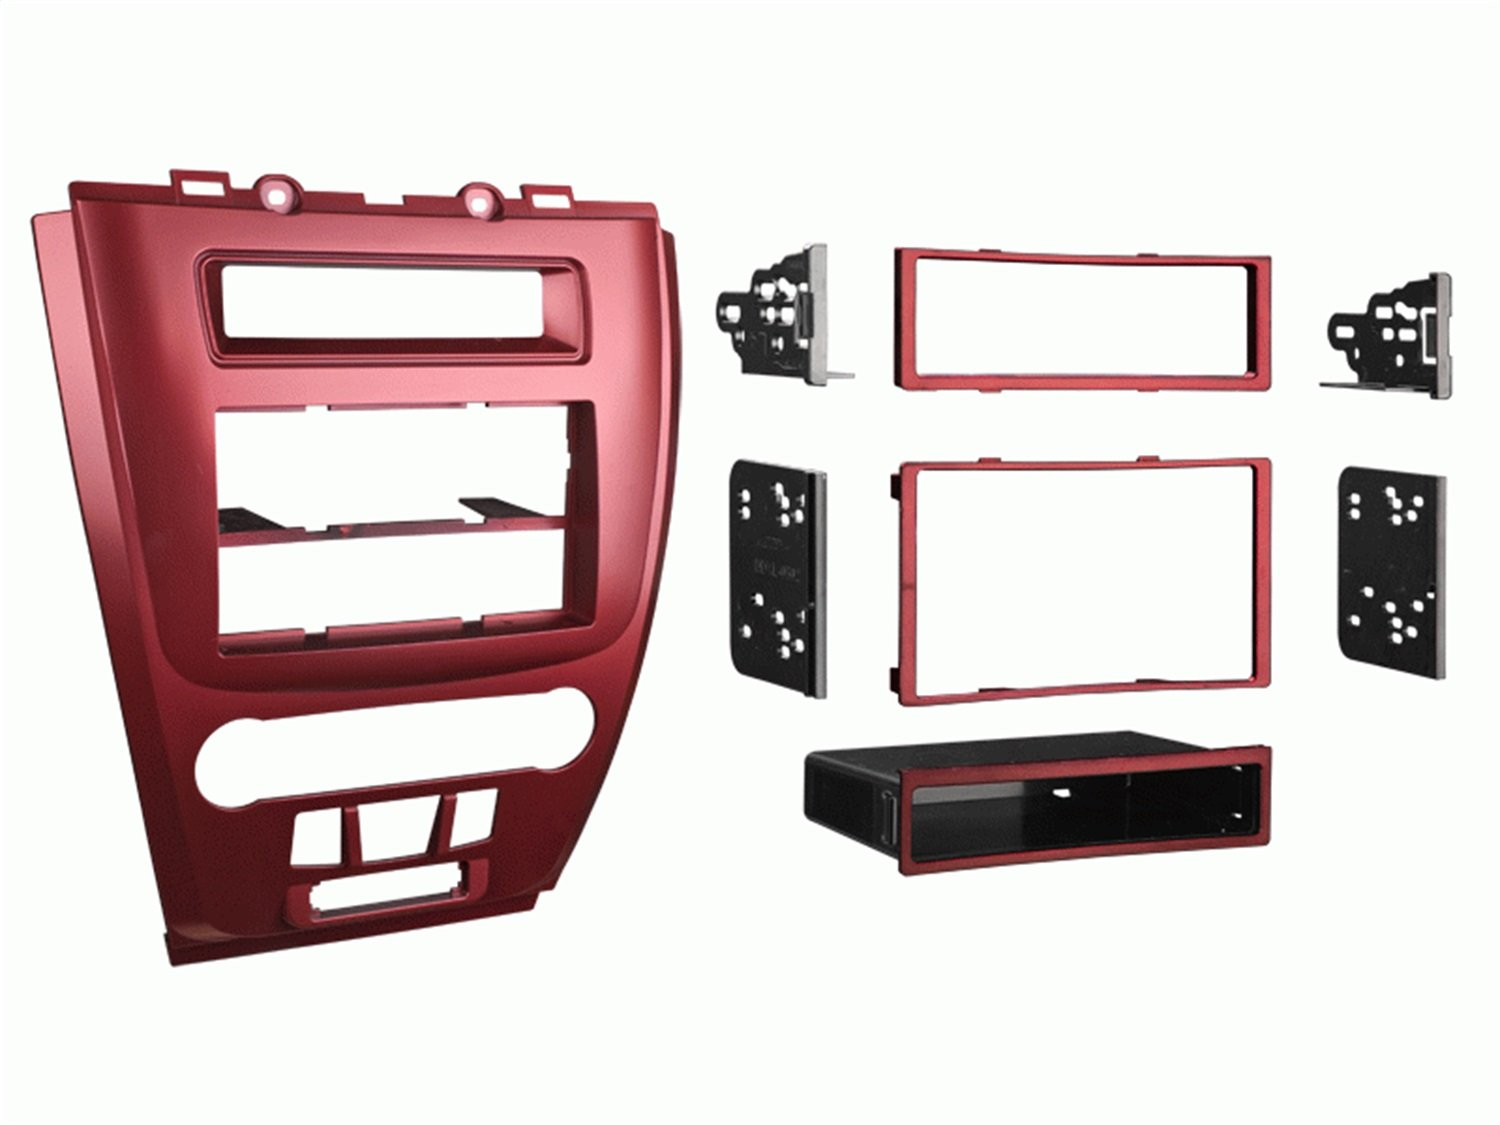 Metra 99-5821S Single or Double DIN Installation Dash Kit for 2010 Ford Fusion and Mercury Milan, Silver Metra Electronics Corporation